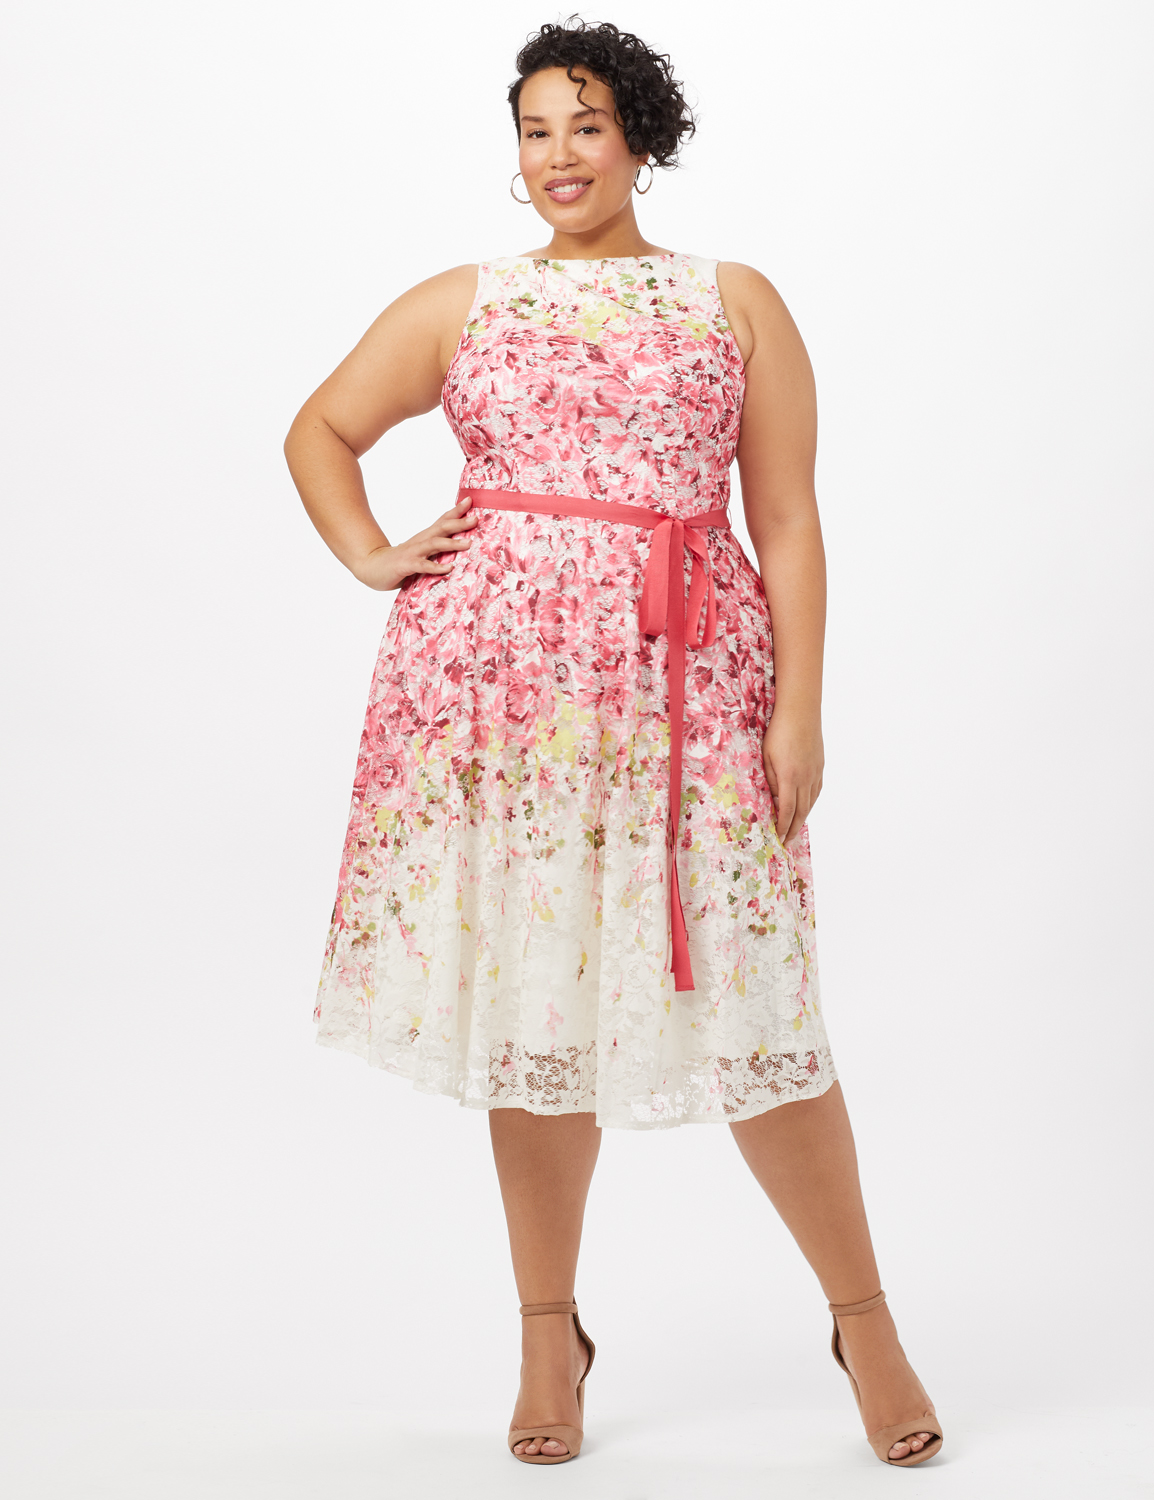 Printed Lace Dress with Grosgrain Ribbon Belt - Ivory/Raspberry - Front